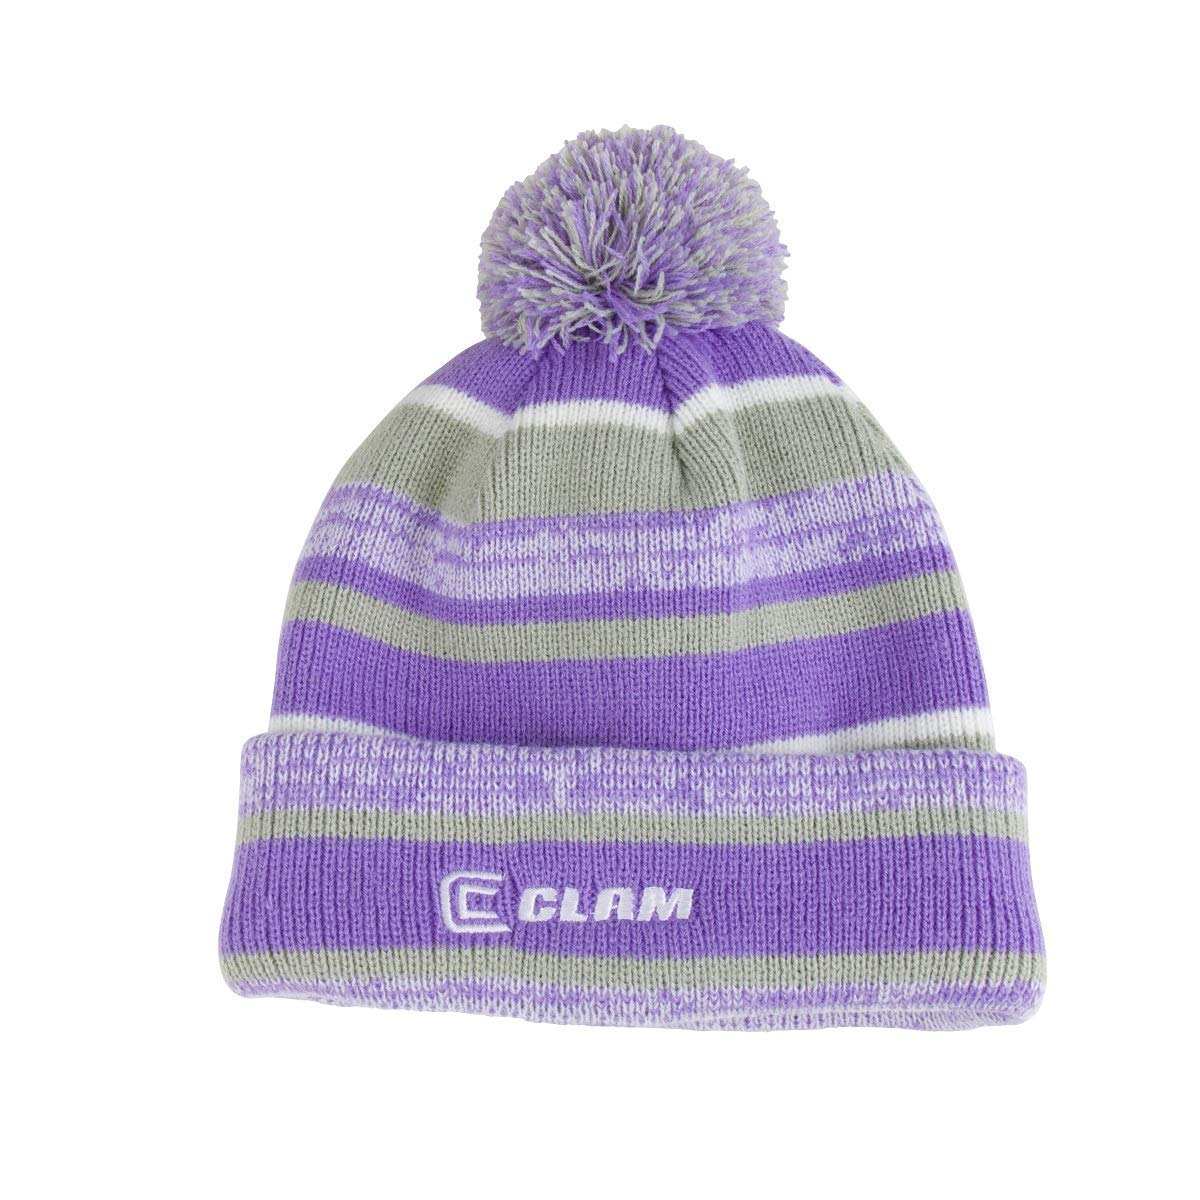 Clam Outdoors POM 2.0 Ice Fishing Hat Lavender